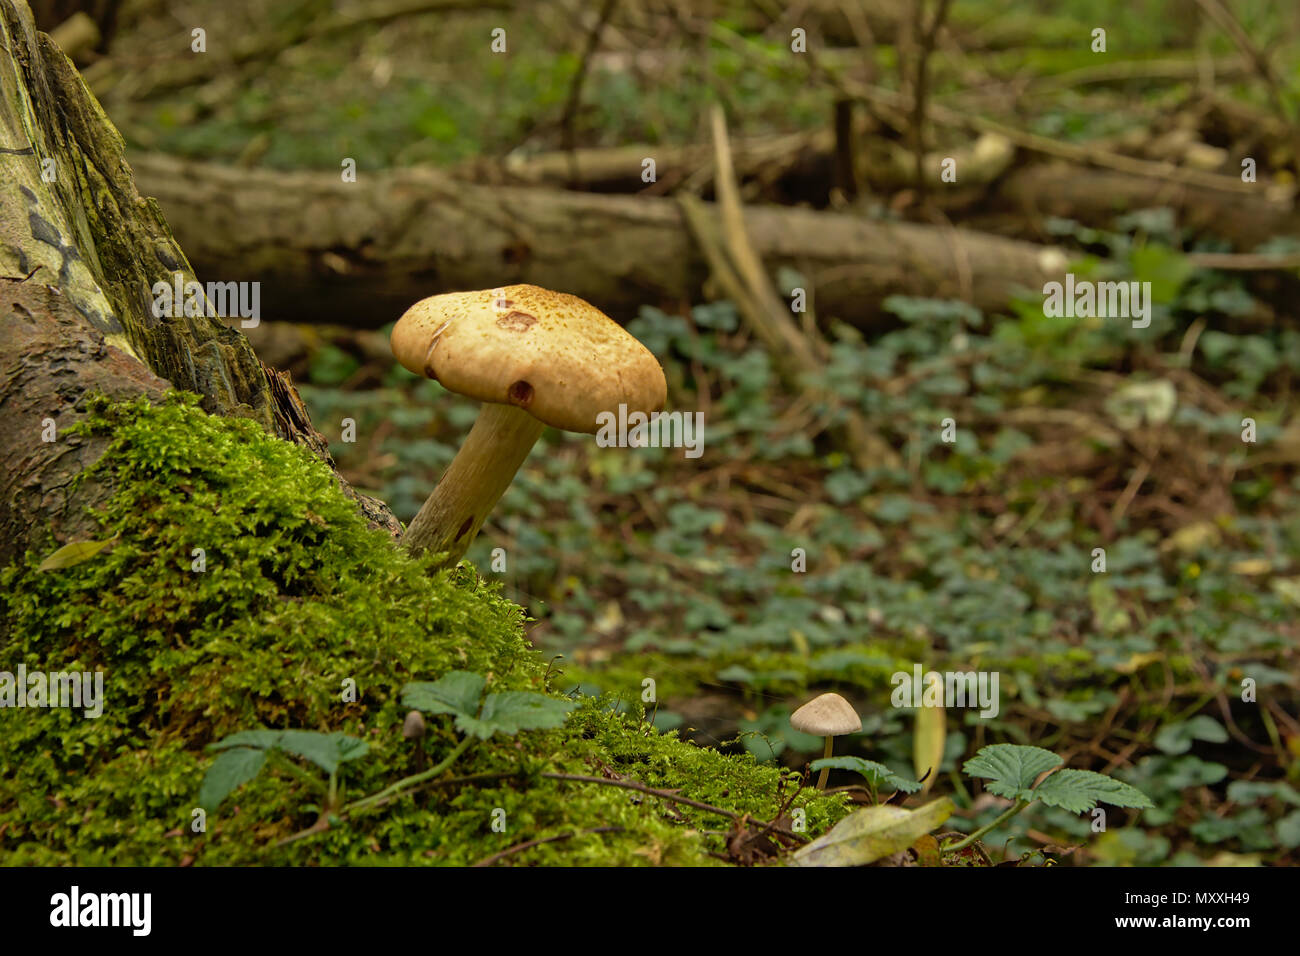 Wild forest mushroom and moss on a tree trunk in the woods, selective focus Stock Photo